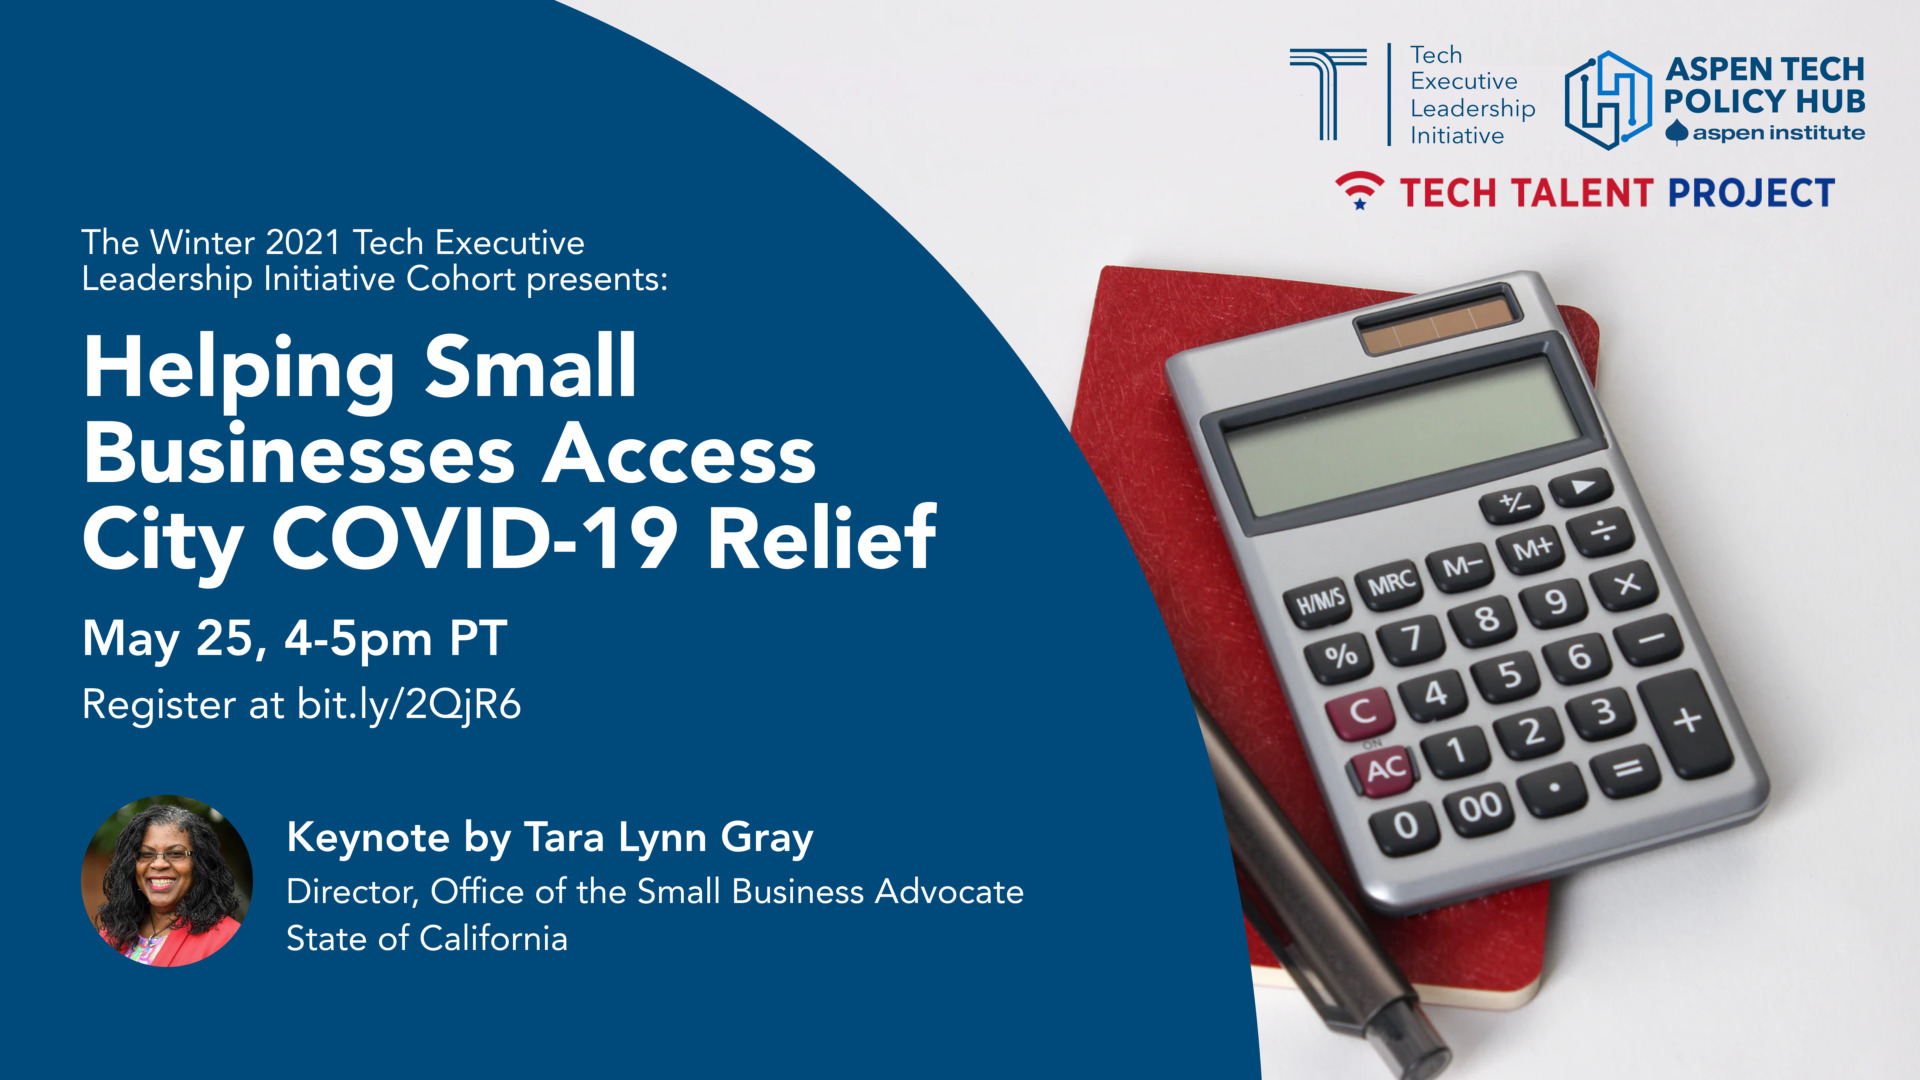 Helping Small Businesses Access COVID-19 Relief